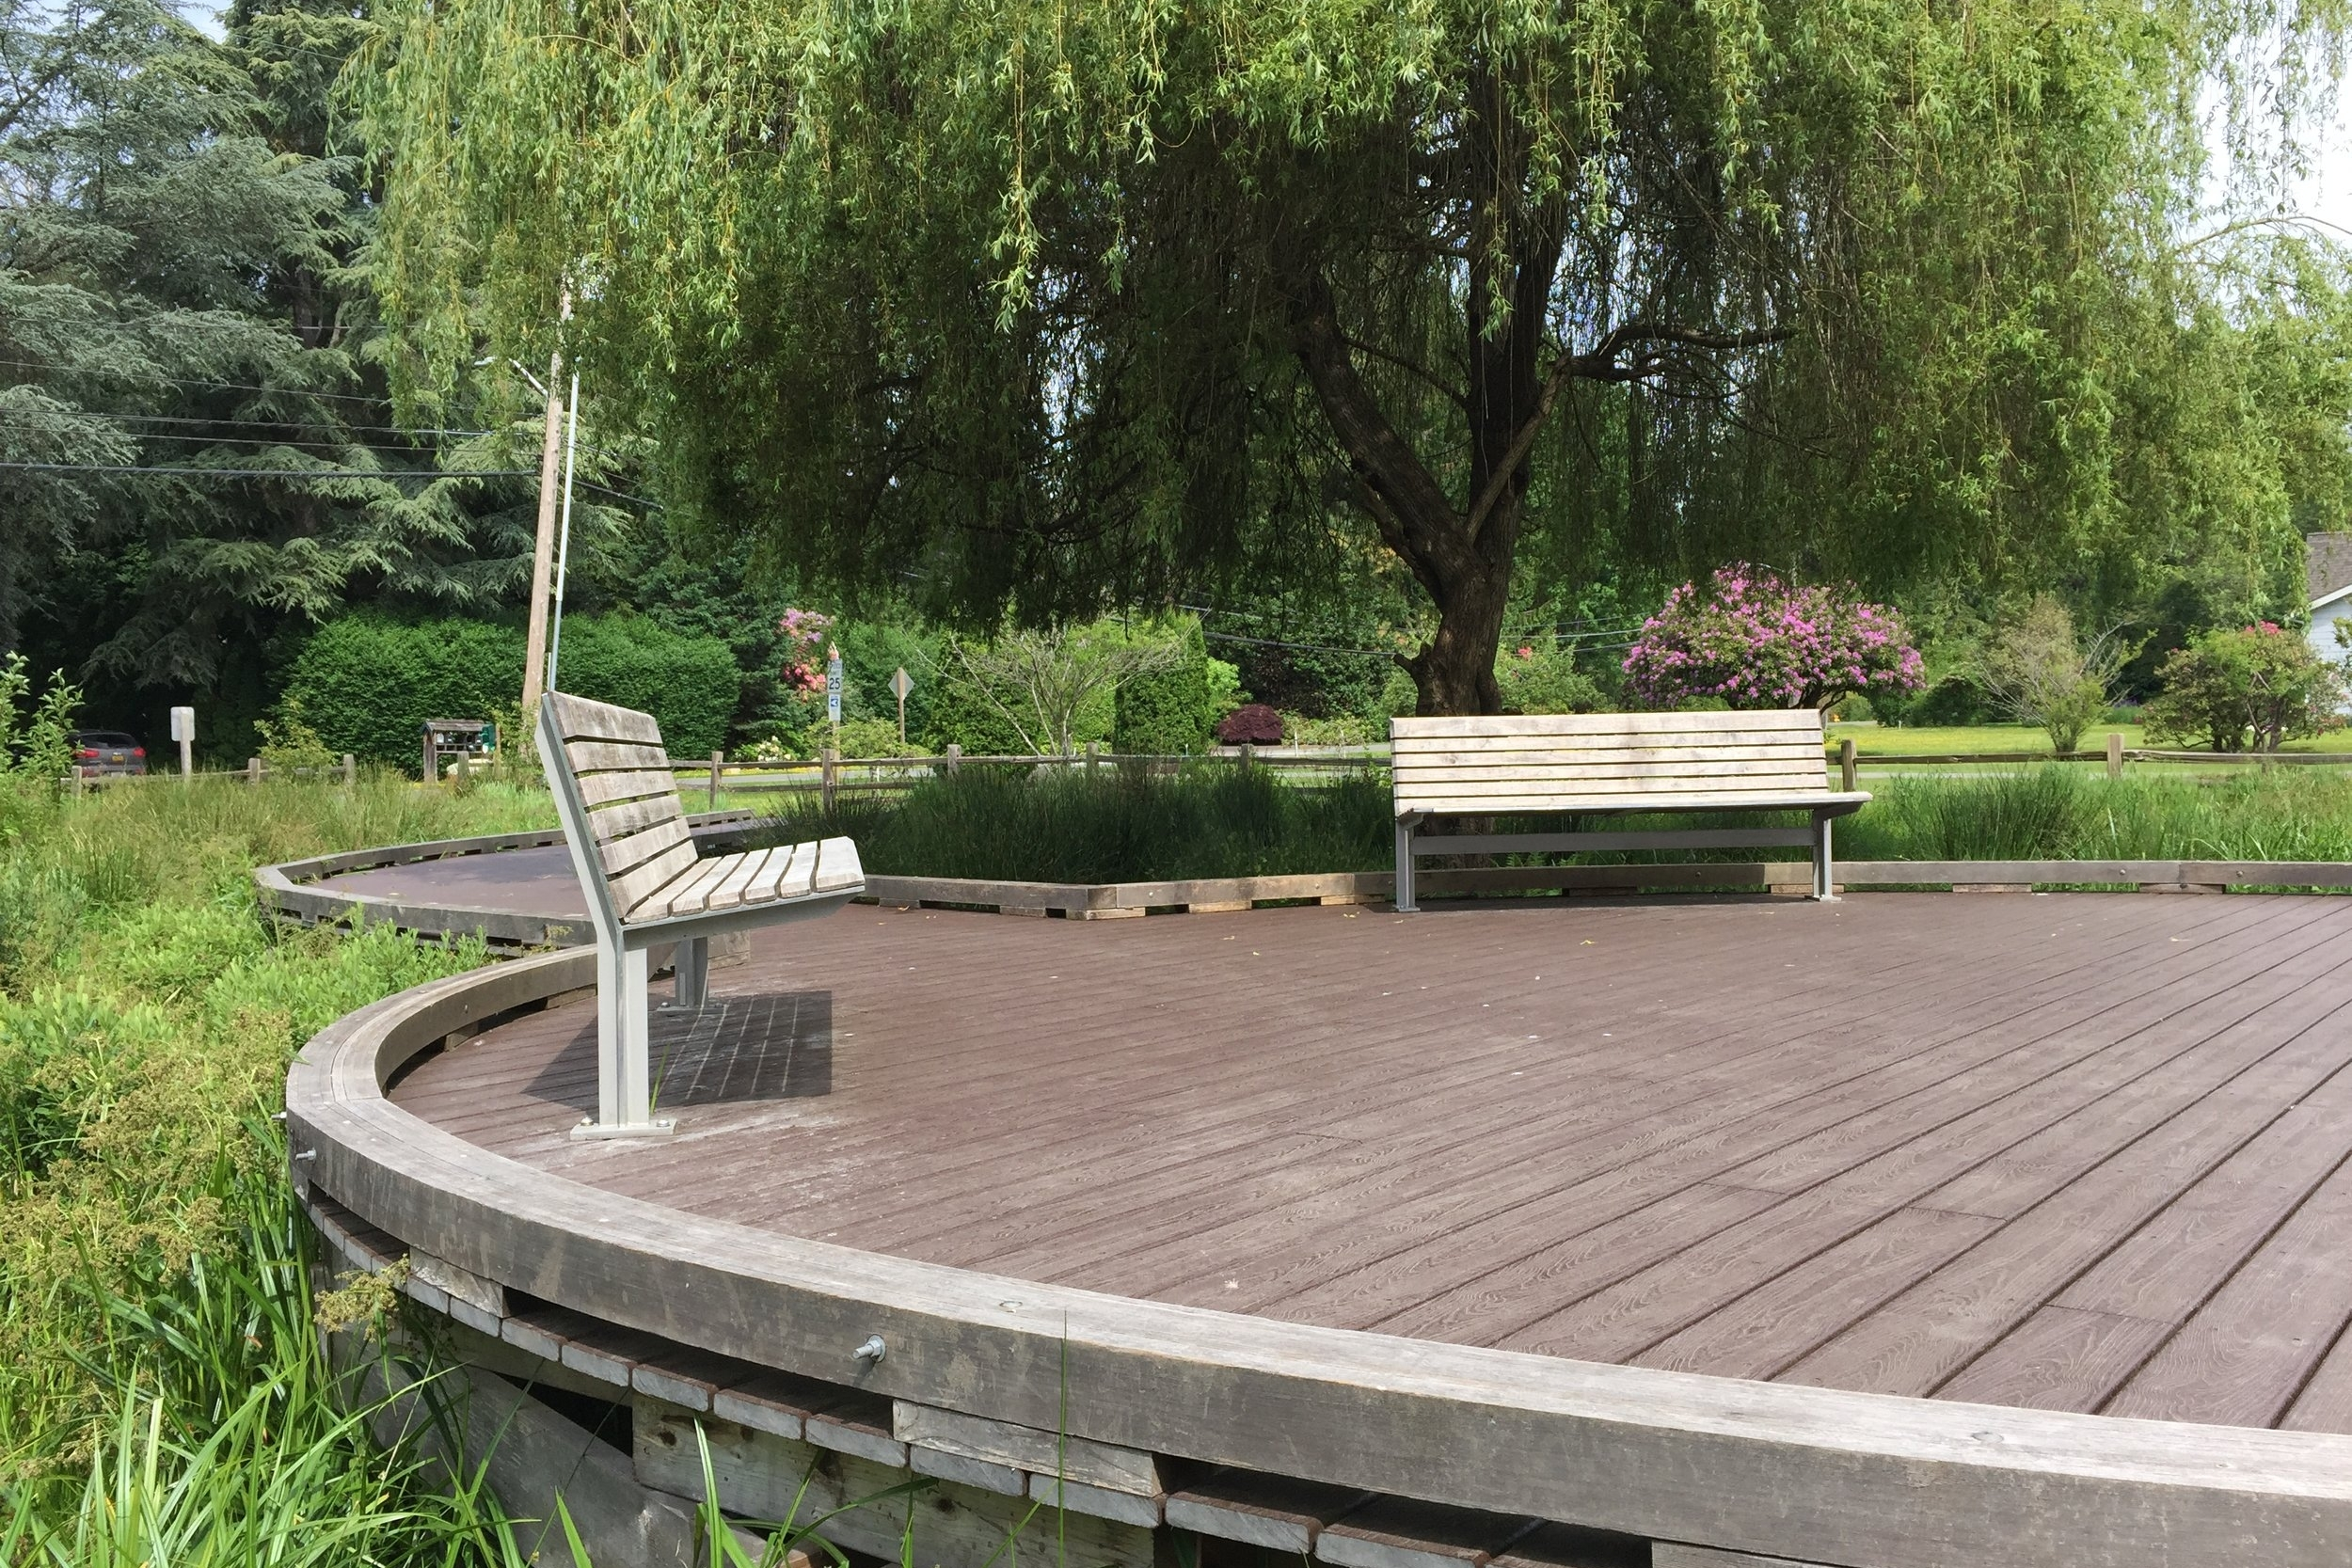 The Watershed Company provided landscape design, wetland delineation, mitigation, and environmental permitting to Lake Forest Park in the development of Whispering Willow Park.